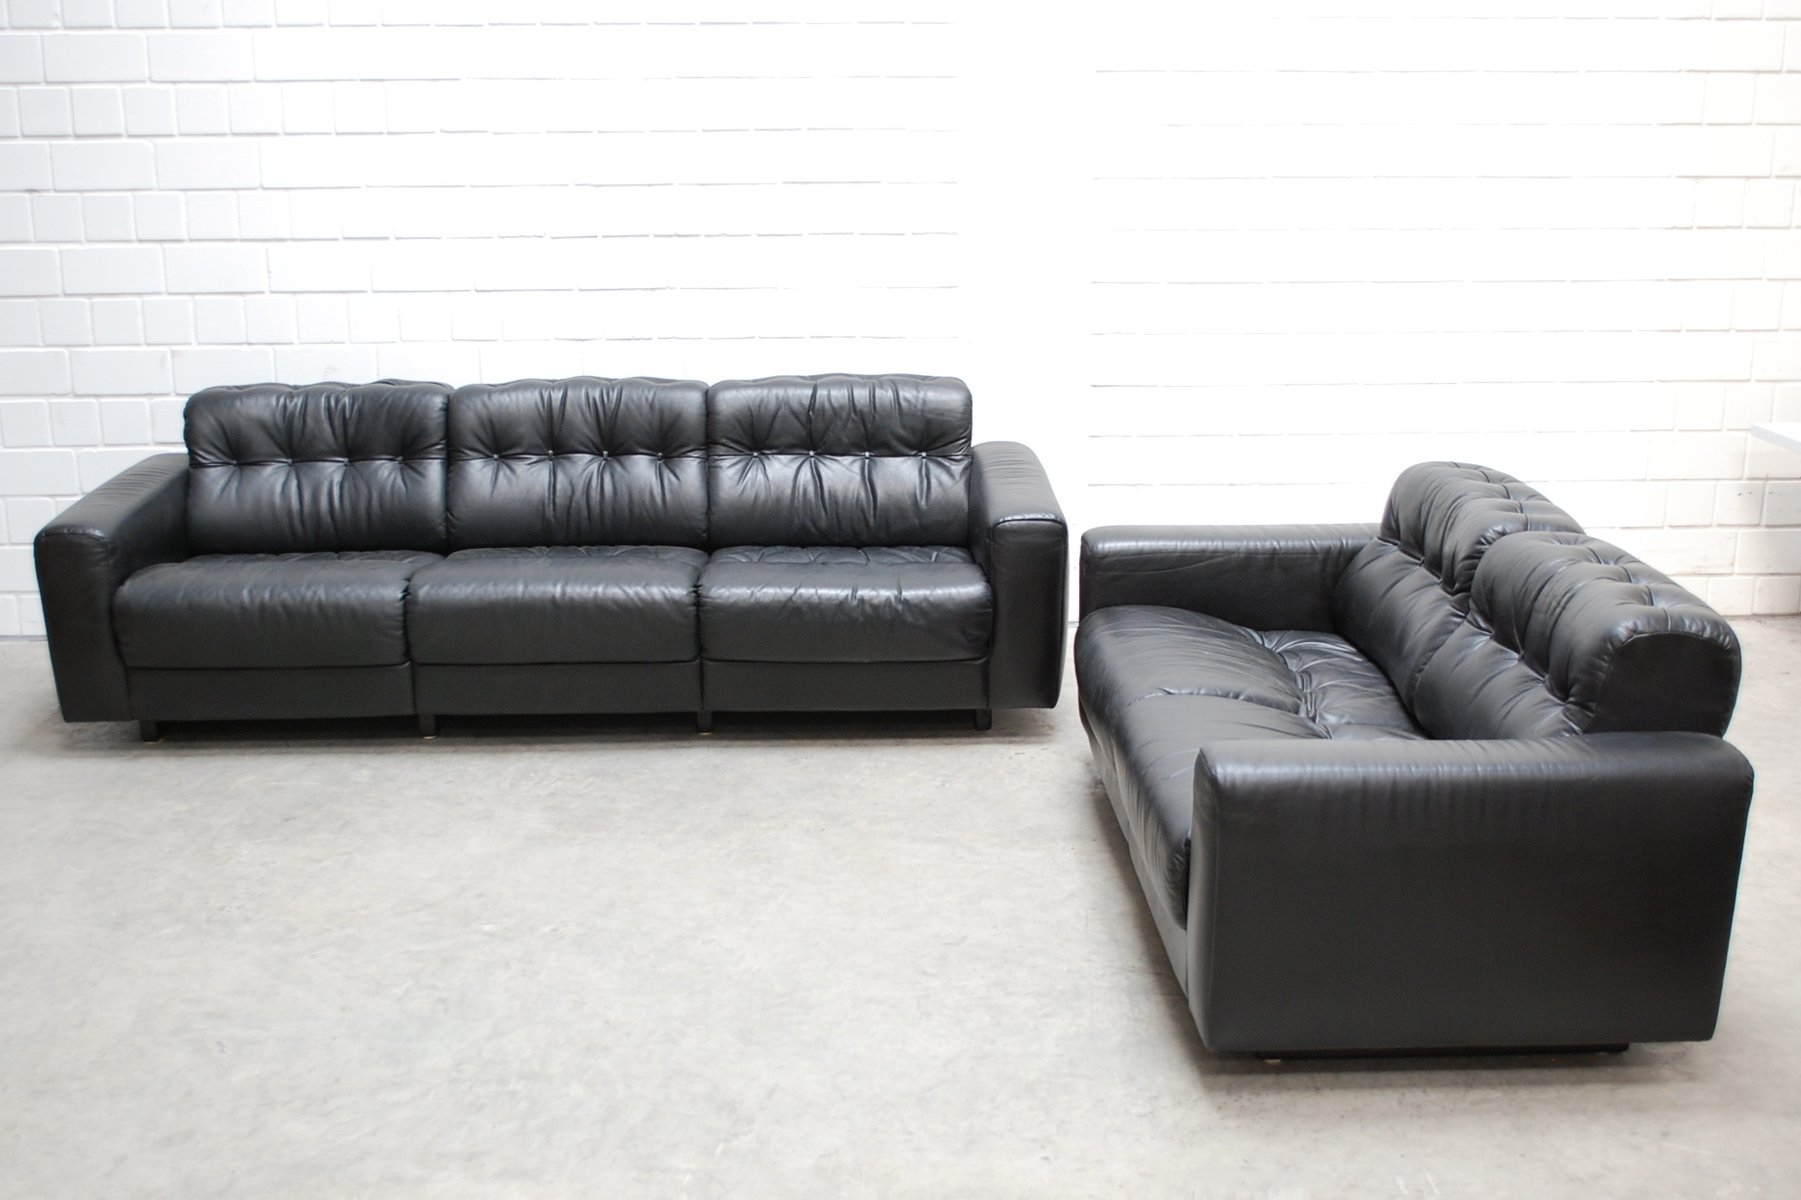 Ds 40 leather living room set from de sede